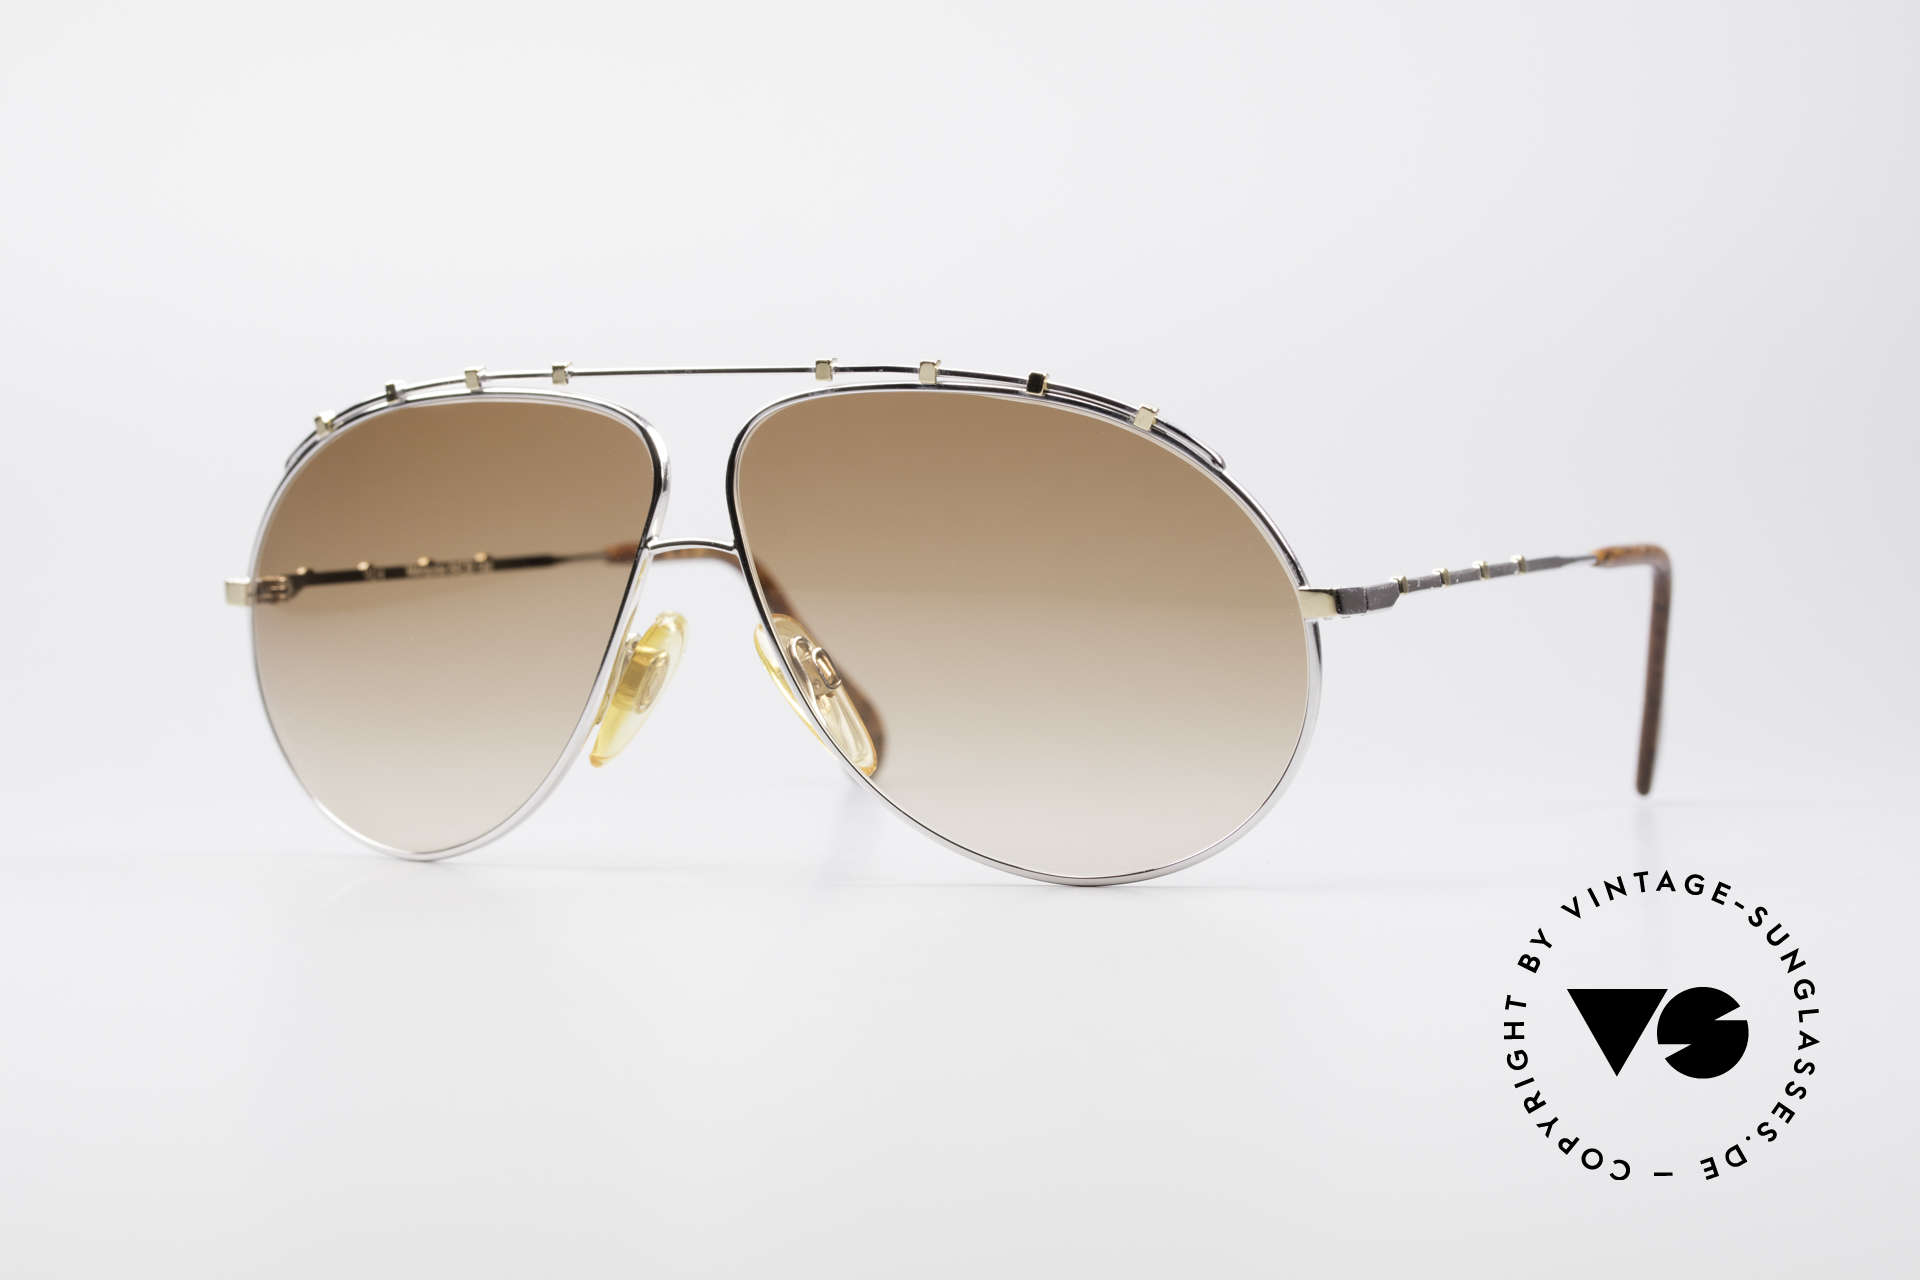 Zollitsch Marquise Rare Vintage Sunglasses, vintage Zollitsch designer sunglasses from the 90's, Made for Men